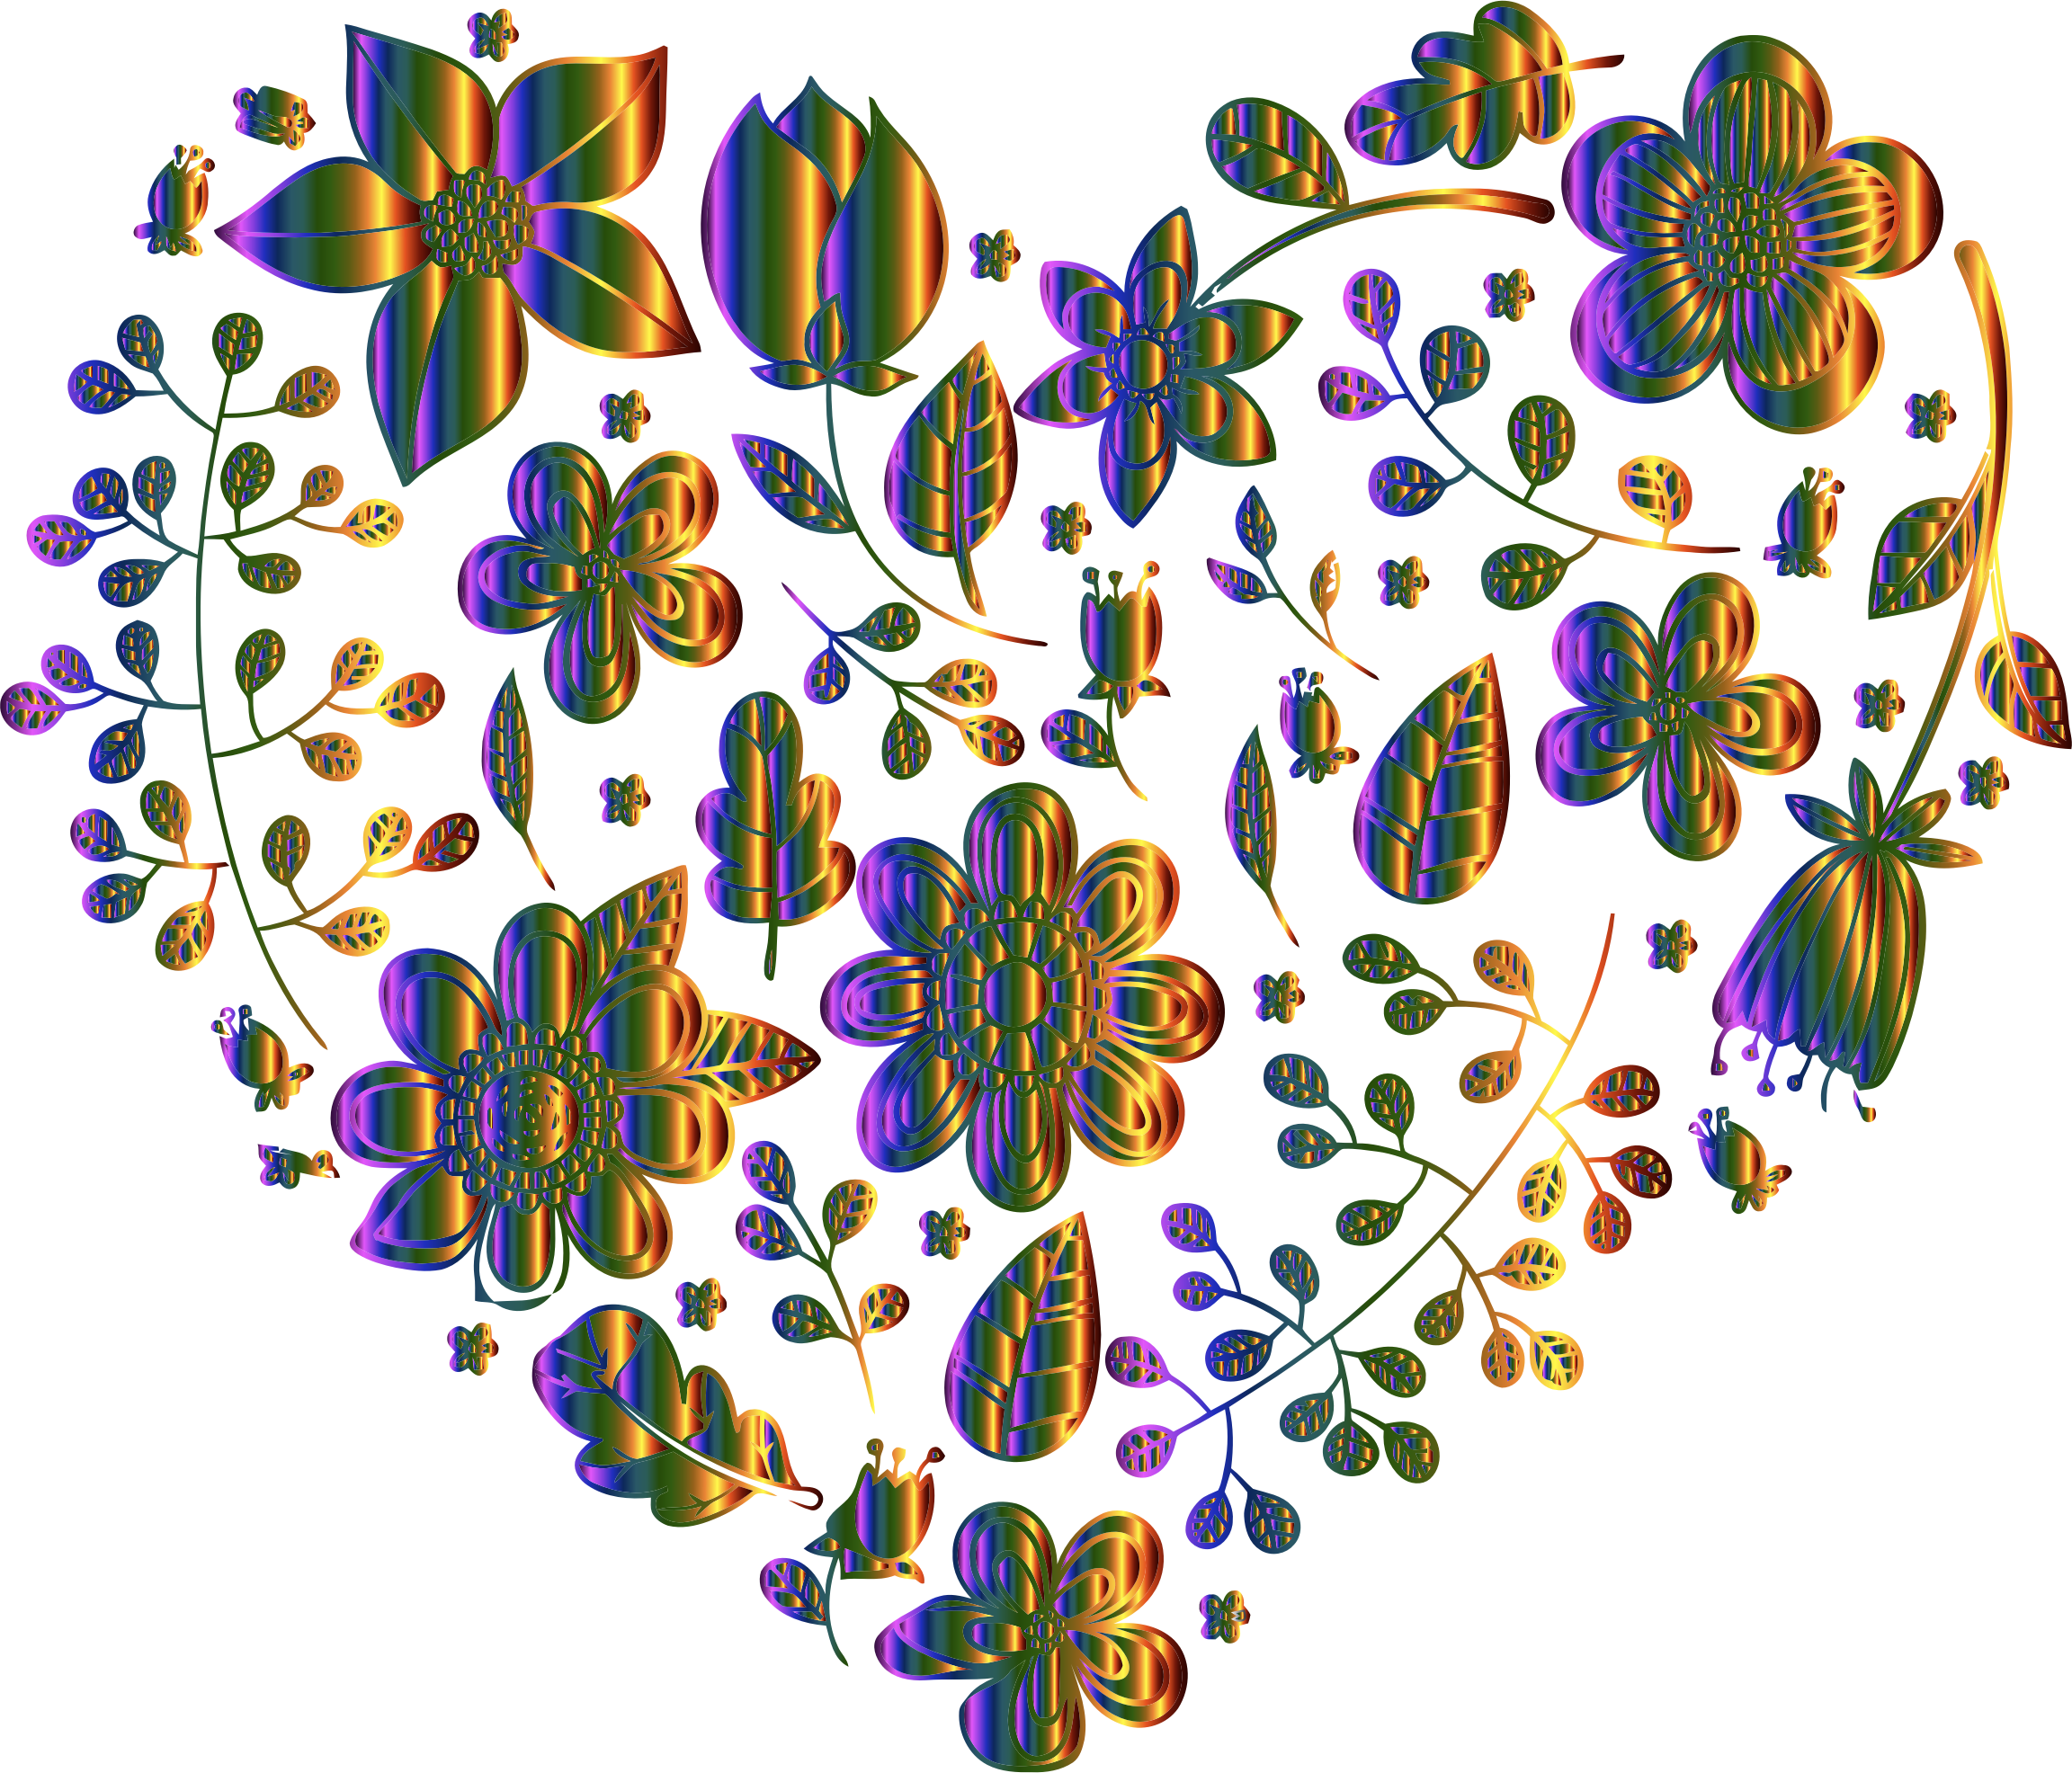 Chromatic Floral Heart No Background by GDJ